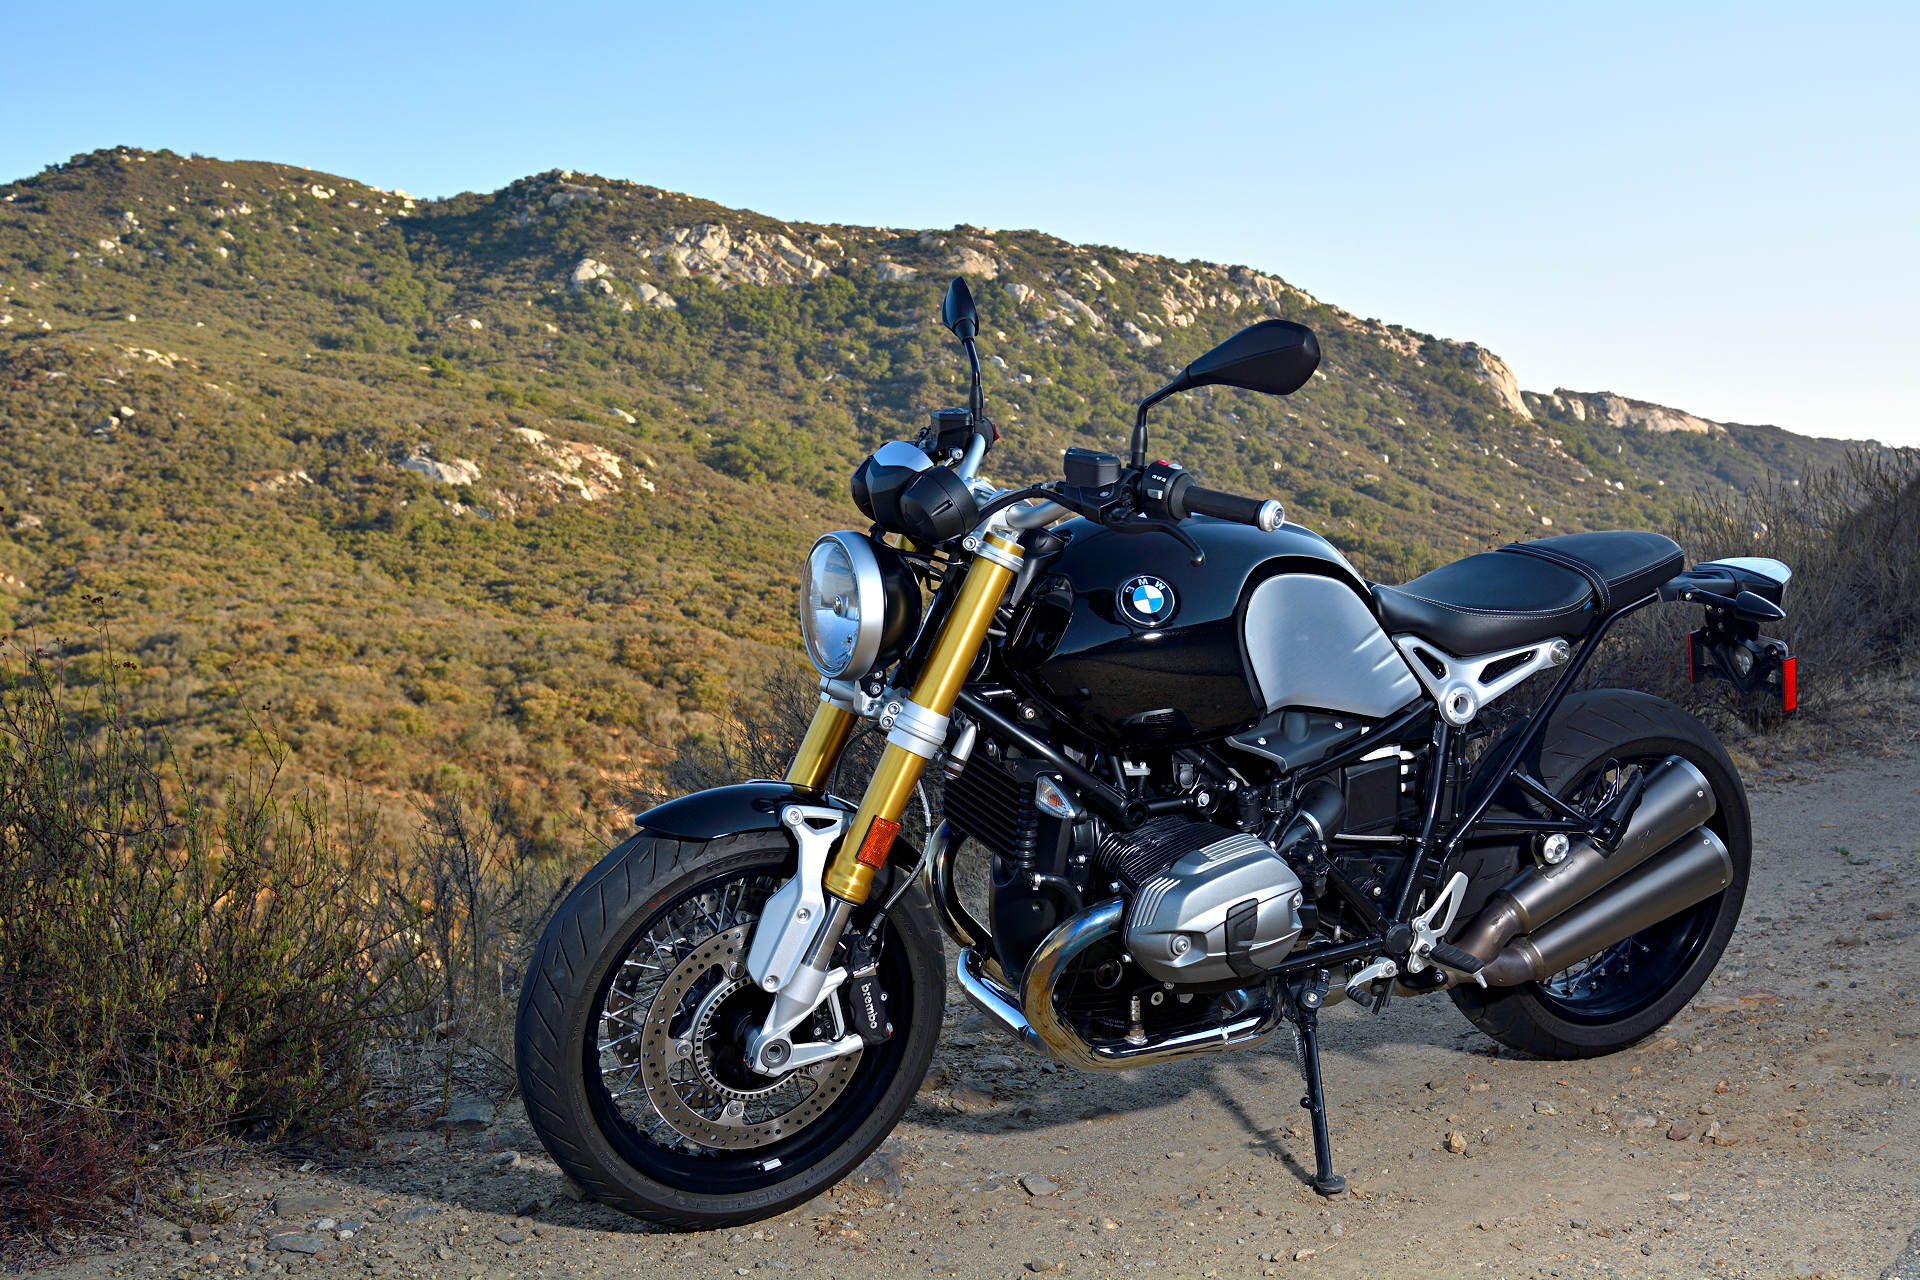 2016 BMW R nineT: MD Ride Review - MotorcycleDaily com - Motorcycle